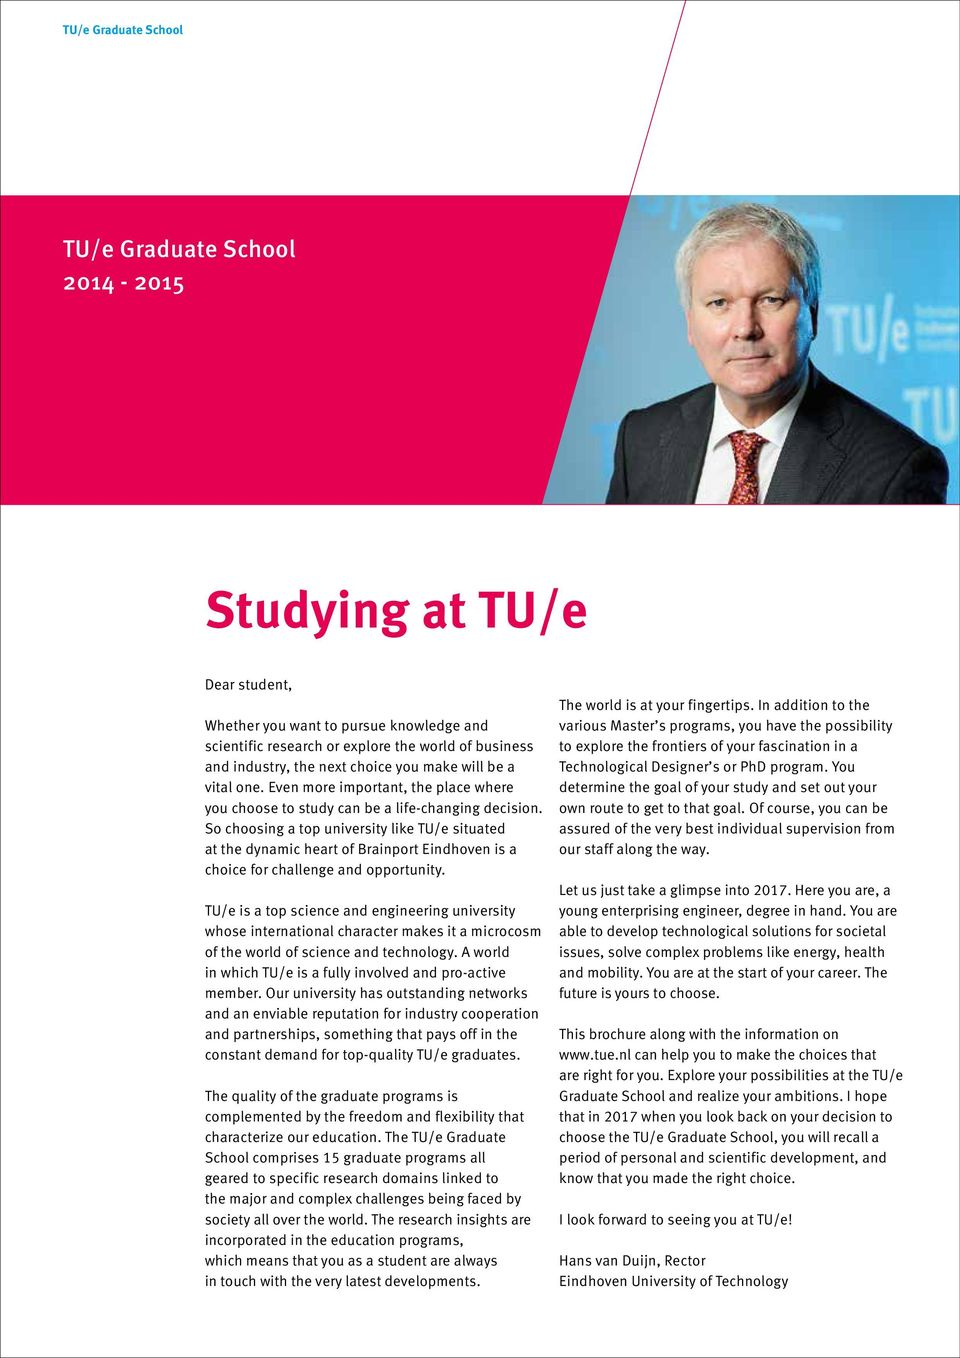 So choosing a top university like TU/e situated at the dynamic heart of Brainport Eindhoven is a choice for challenge and opportunity.